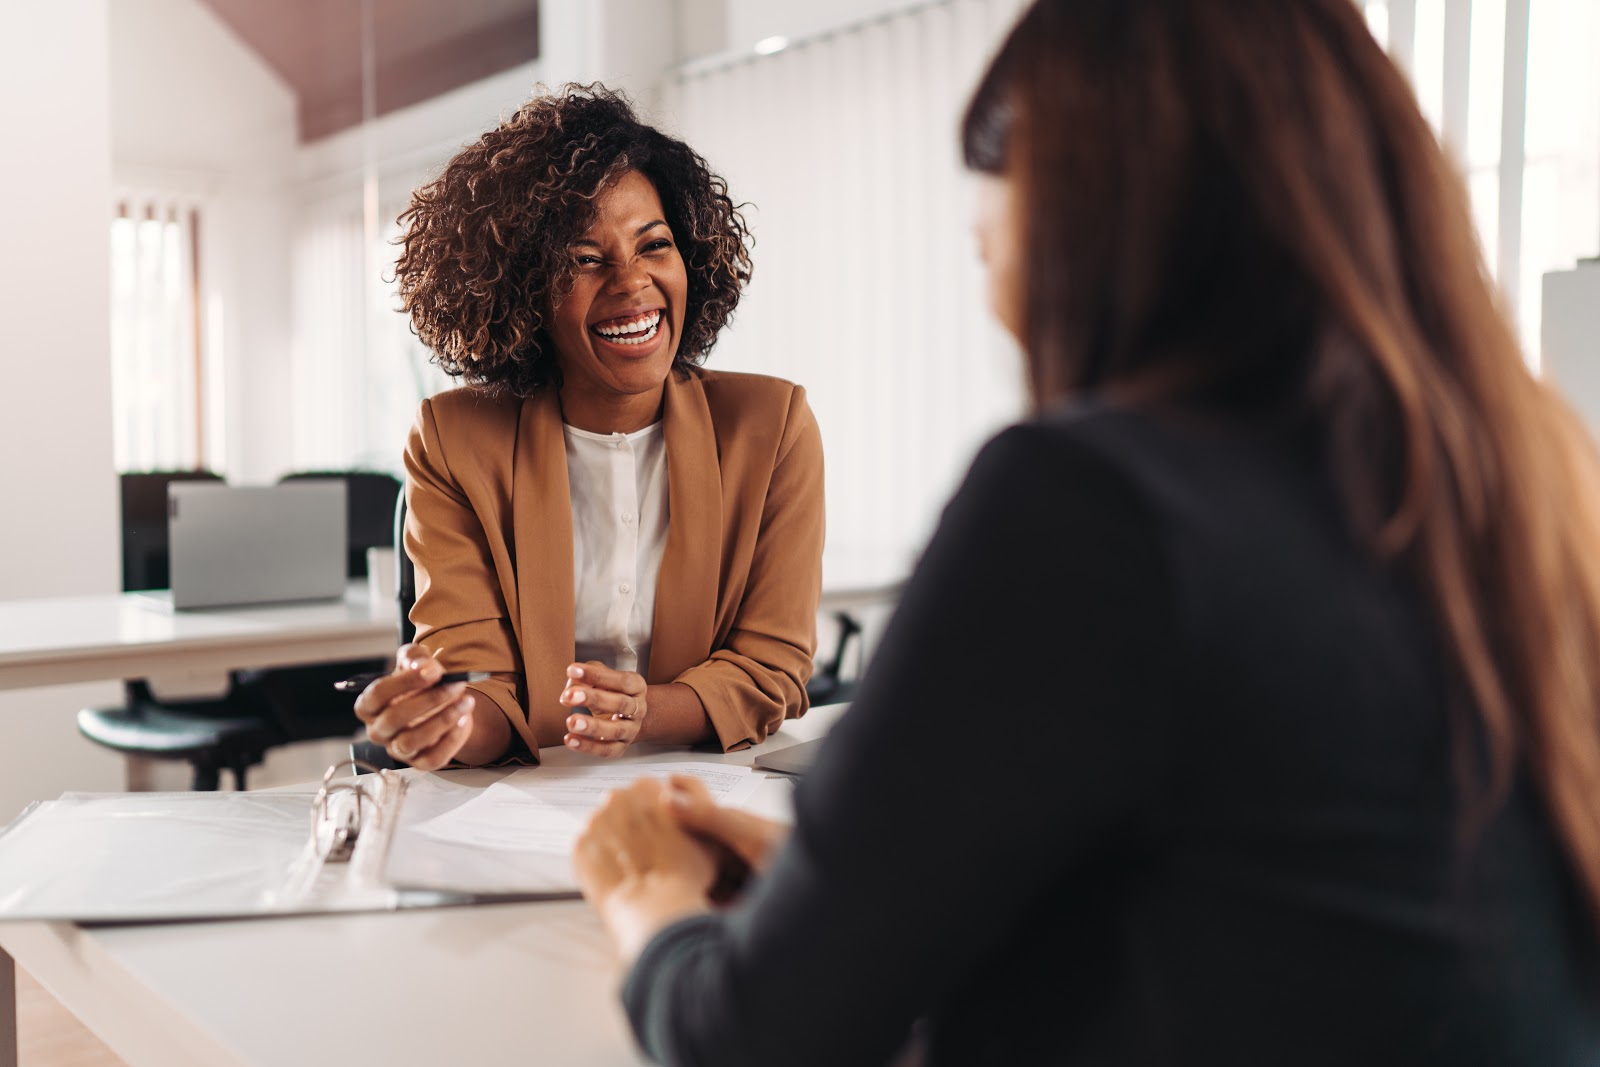 marketing interview questions: Interviewer laughing with the applicant during an interview